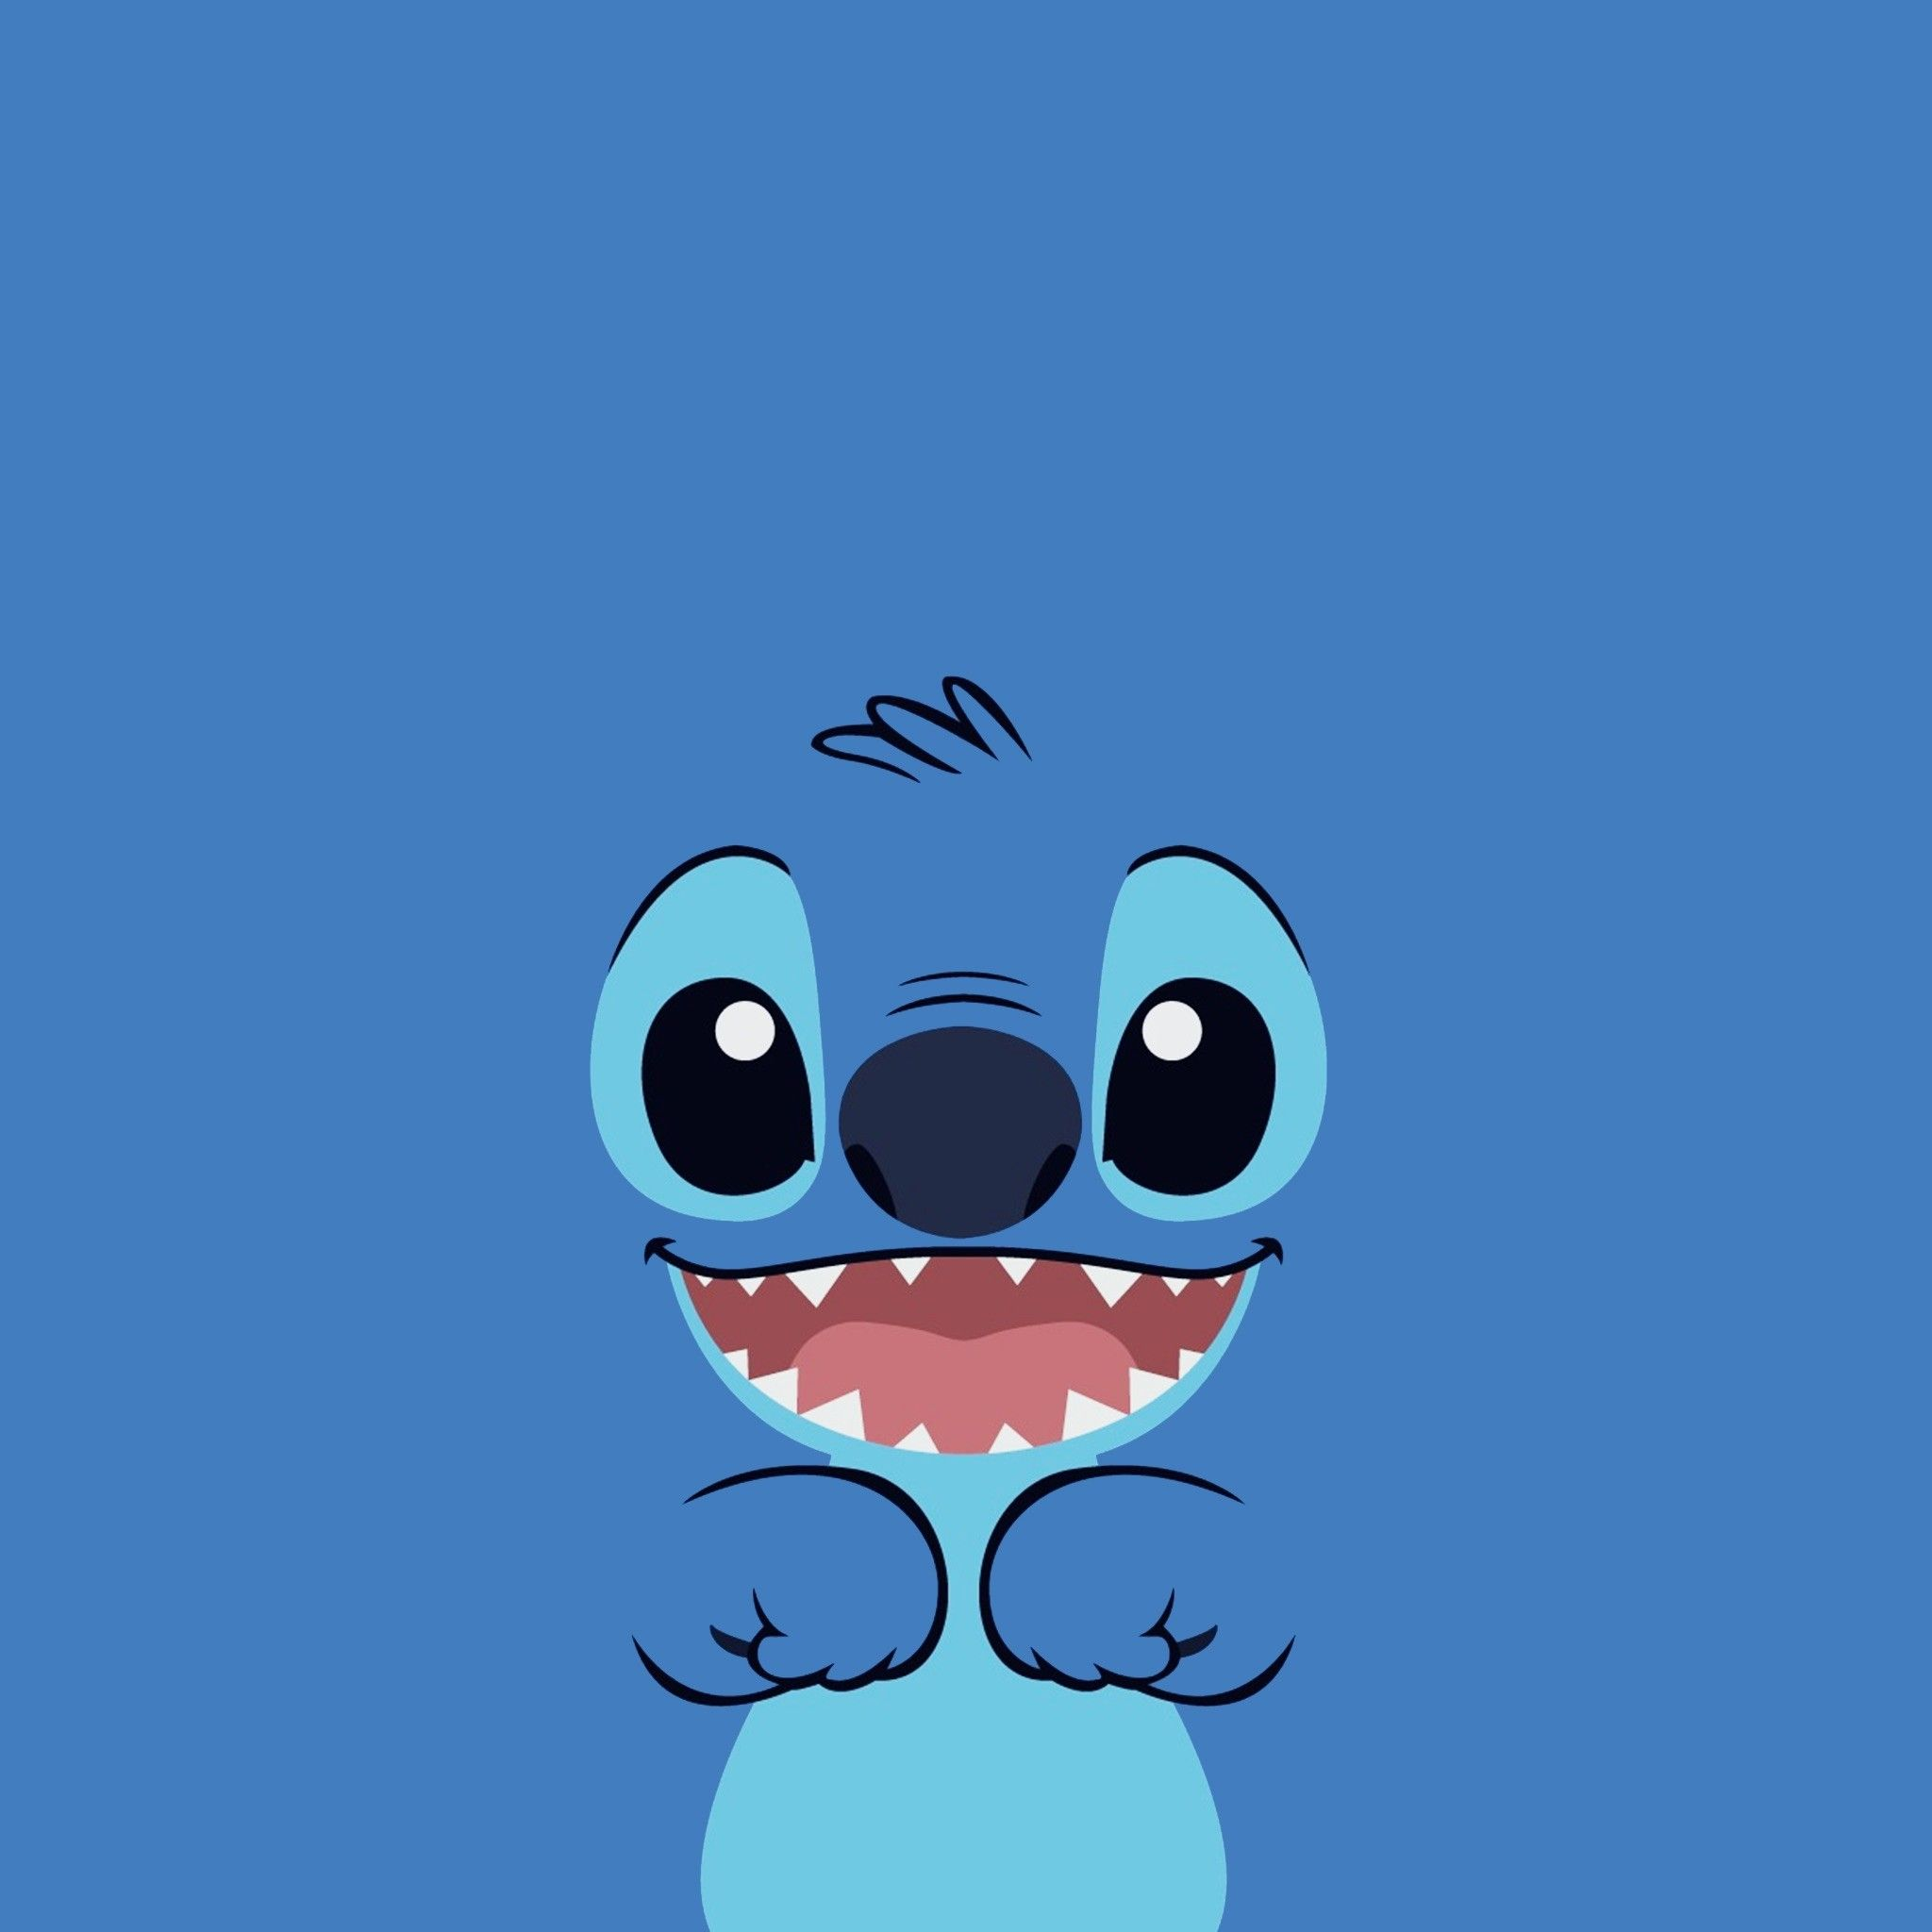 Cute Stitch iPhone Wallpapers - Top Free Cute Stitch iPhone